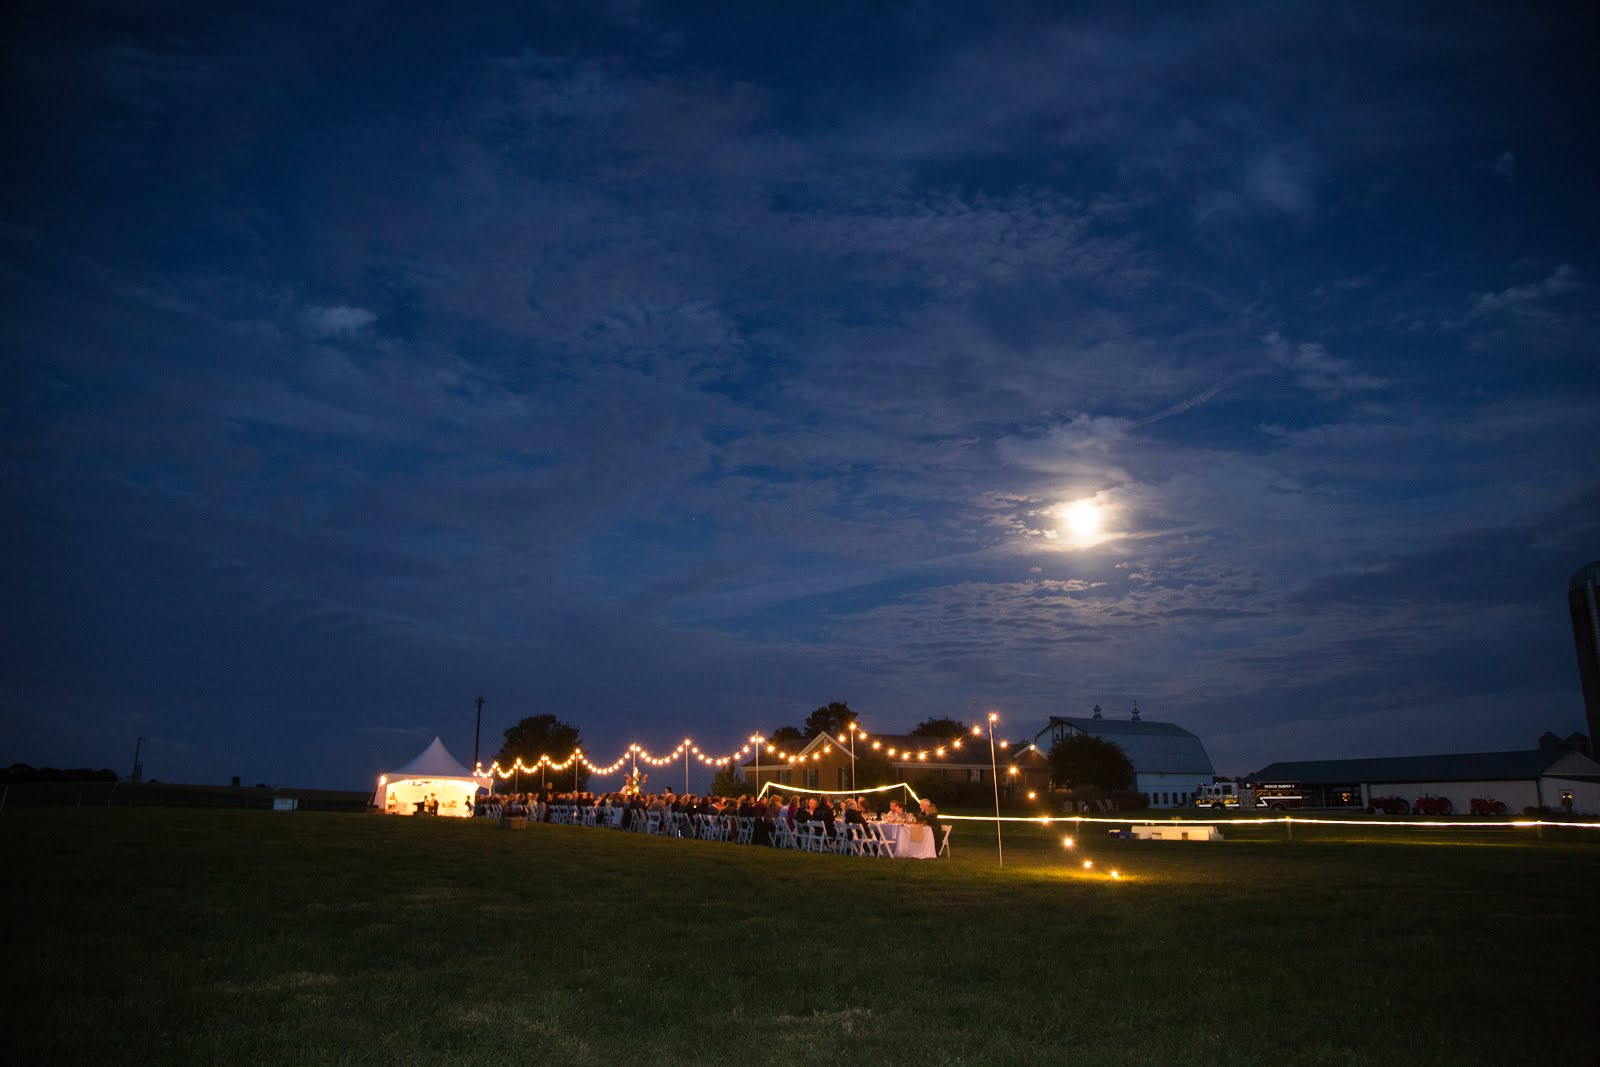 The phantom tent lights & moon light